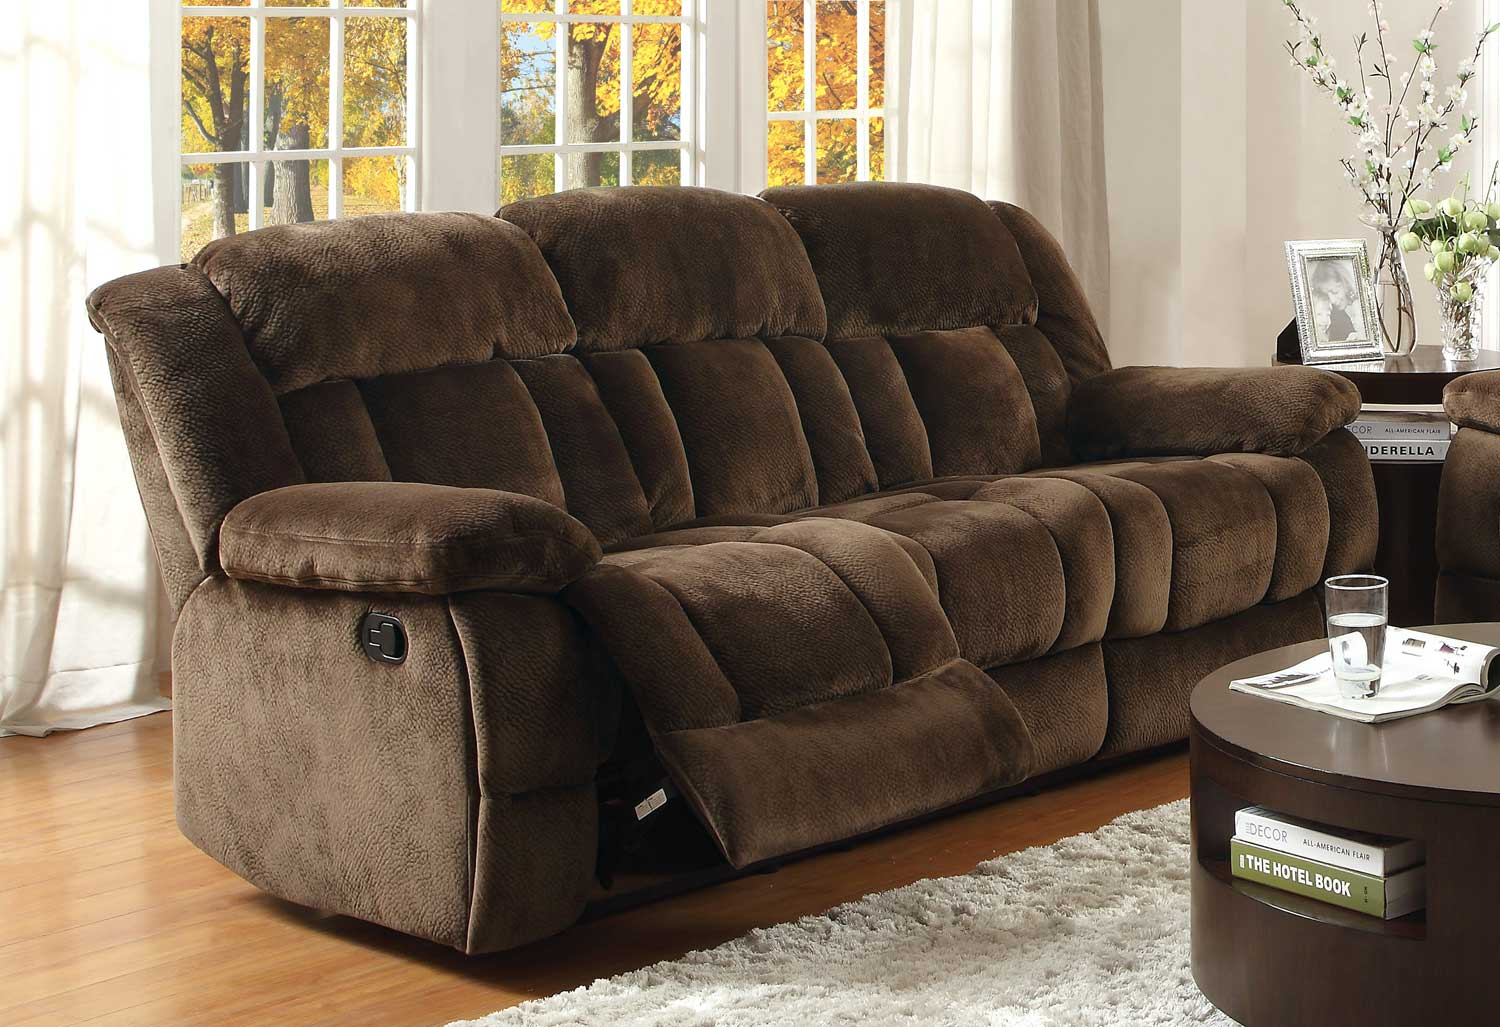 homelegance laurelton reclining sofa set chocolate. Black Bedroom Furniture Sets. Home Design Ideas